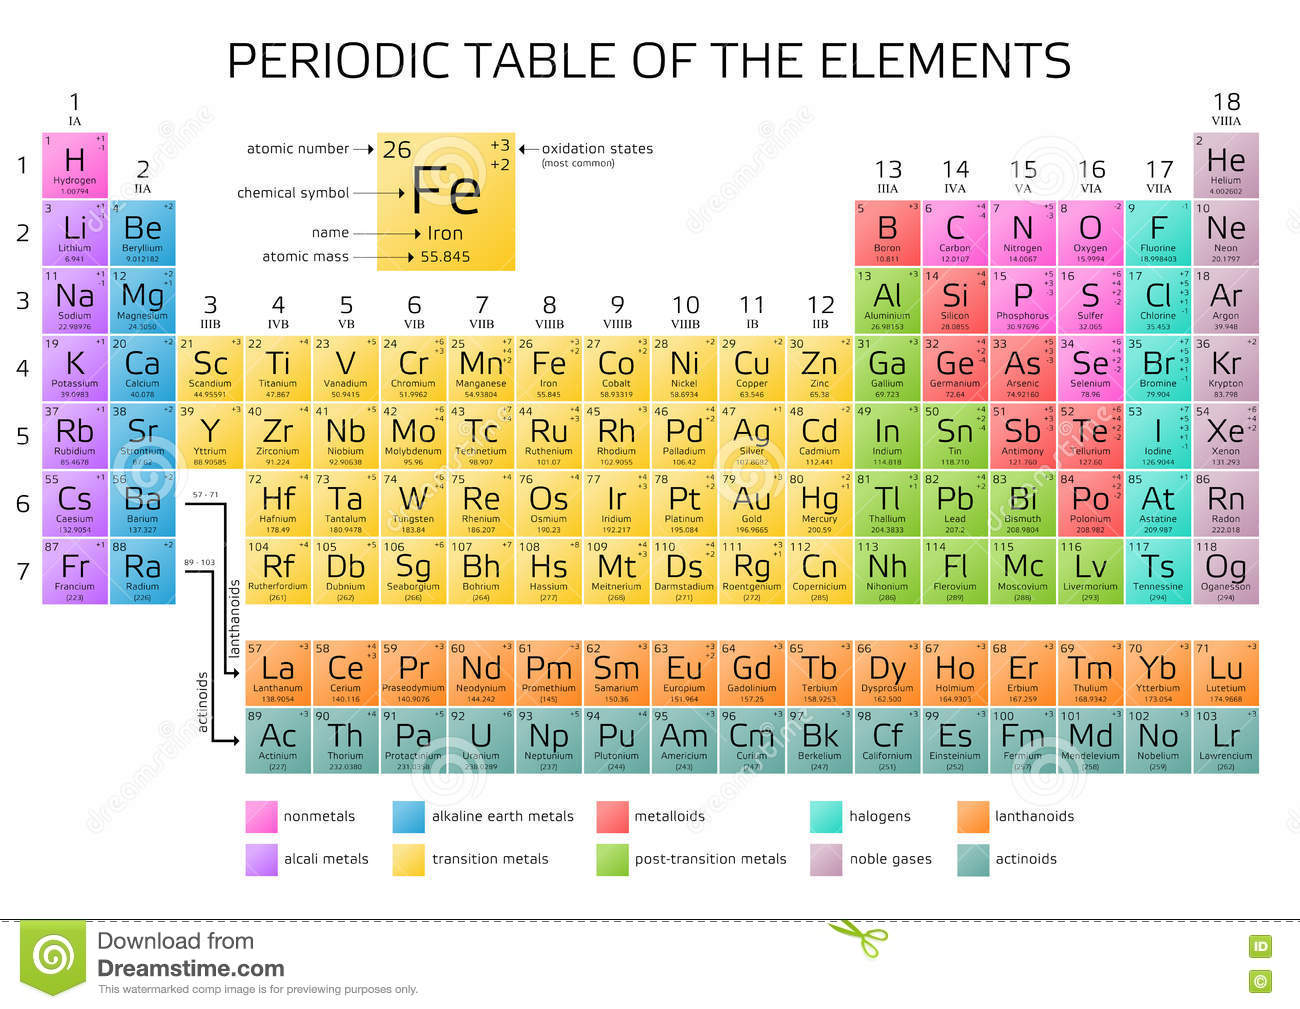 Mendeleevs periodic table of elements with new elements 2016 mendeleevs periodic table of elements with new elements 2016 atom atomic buycottarizona